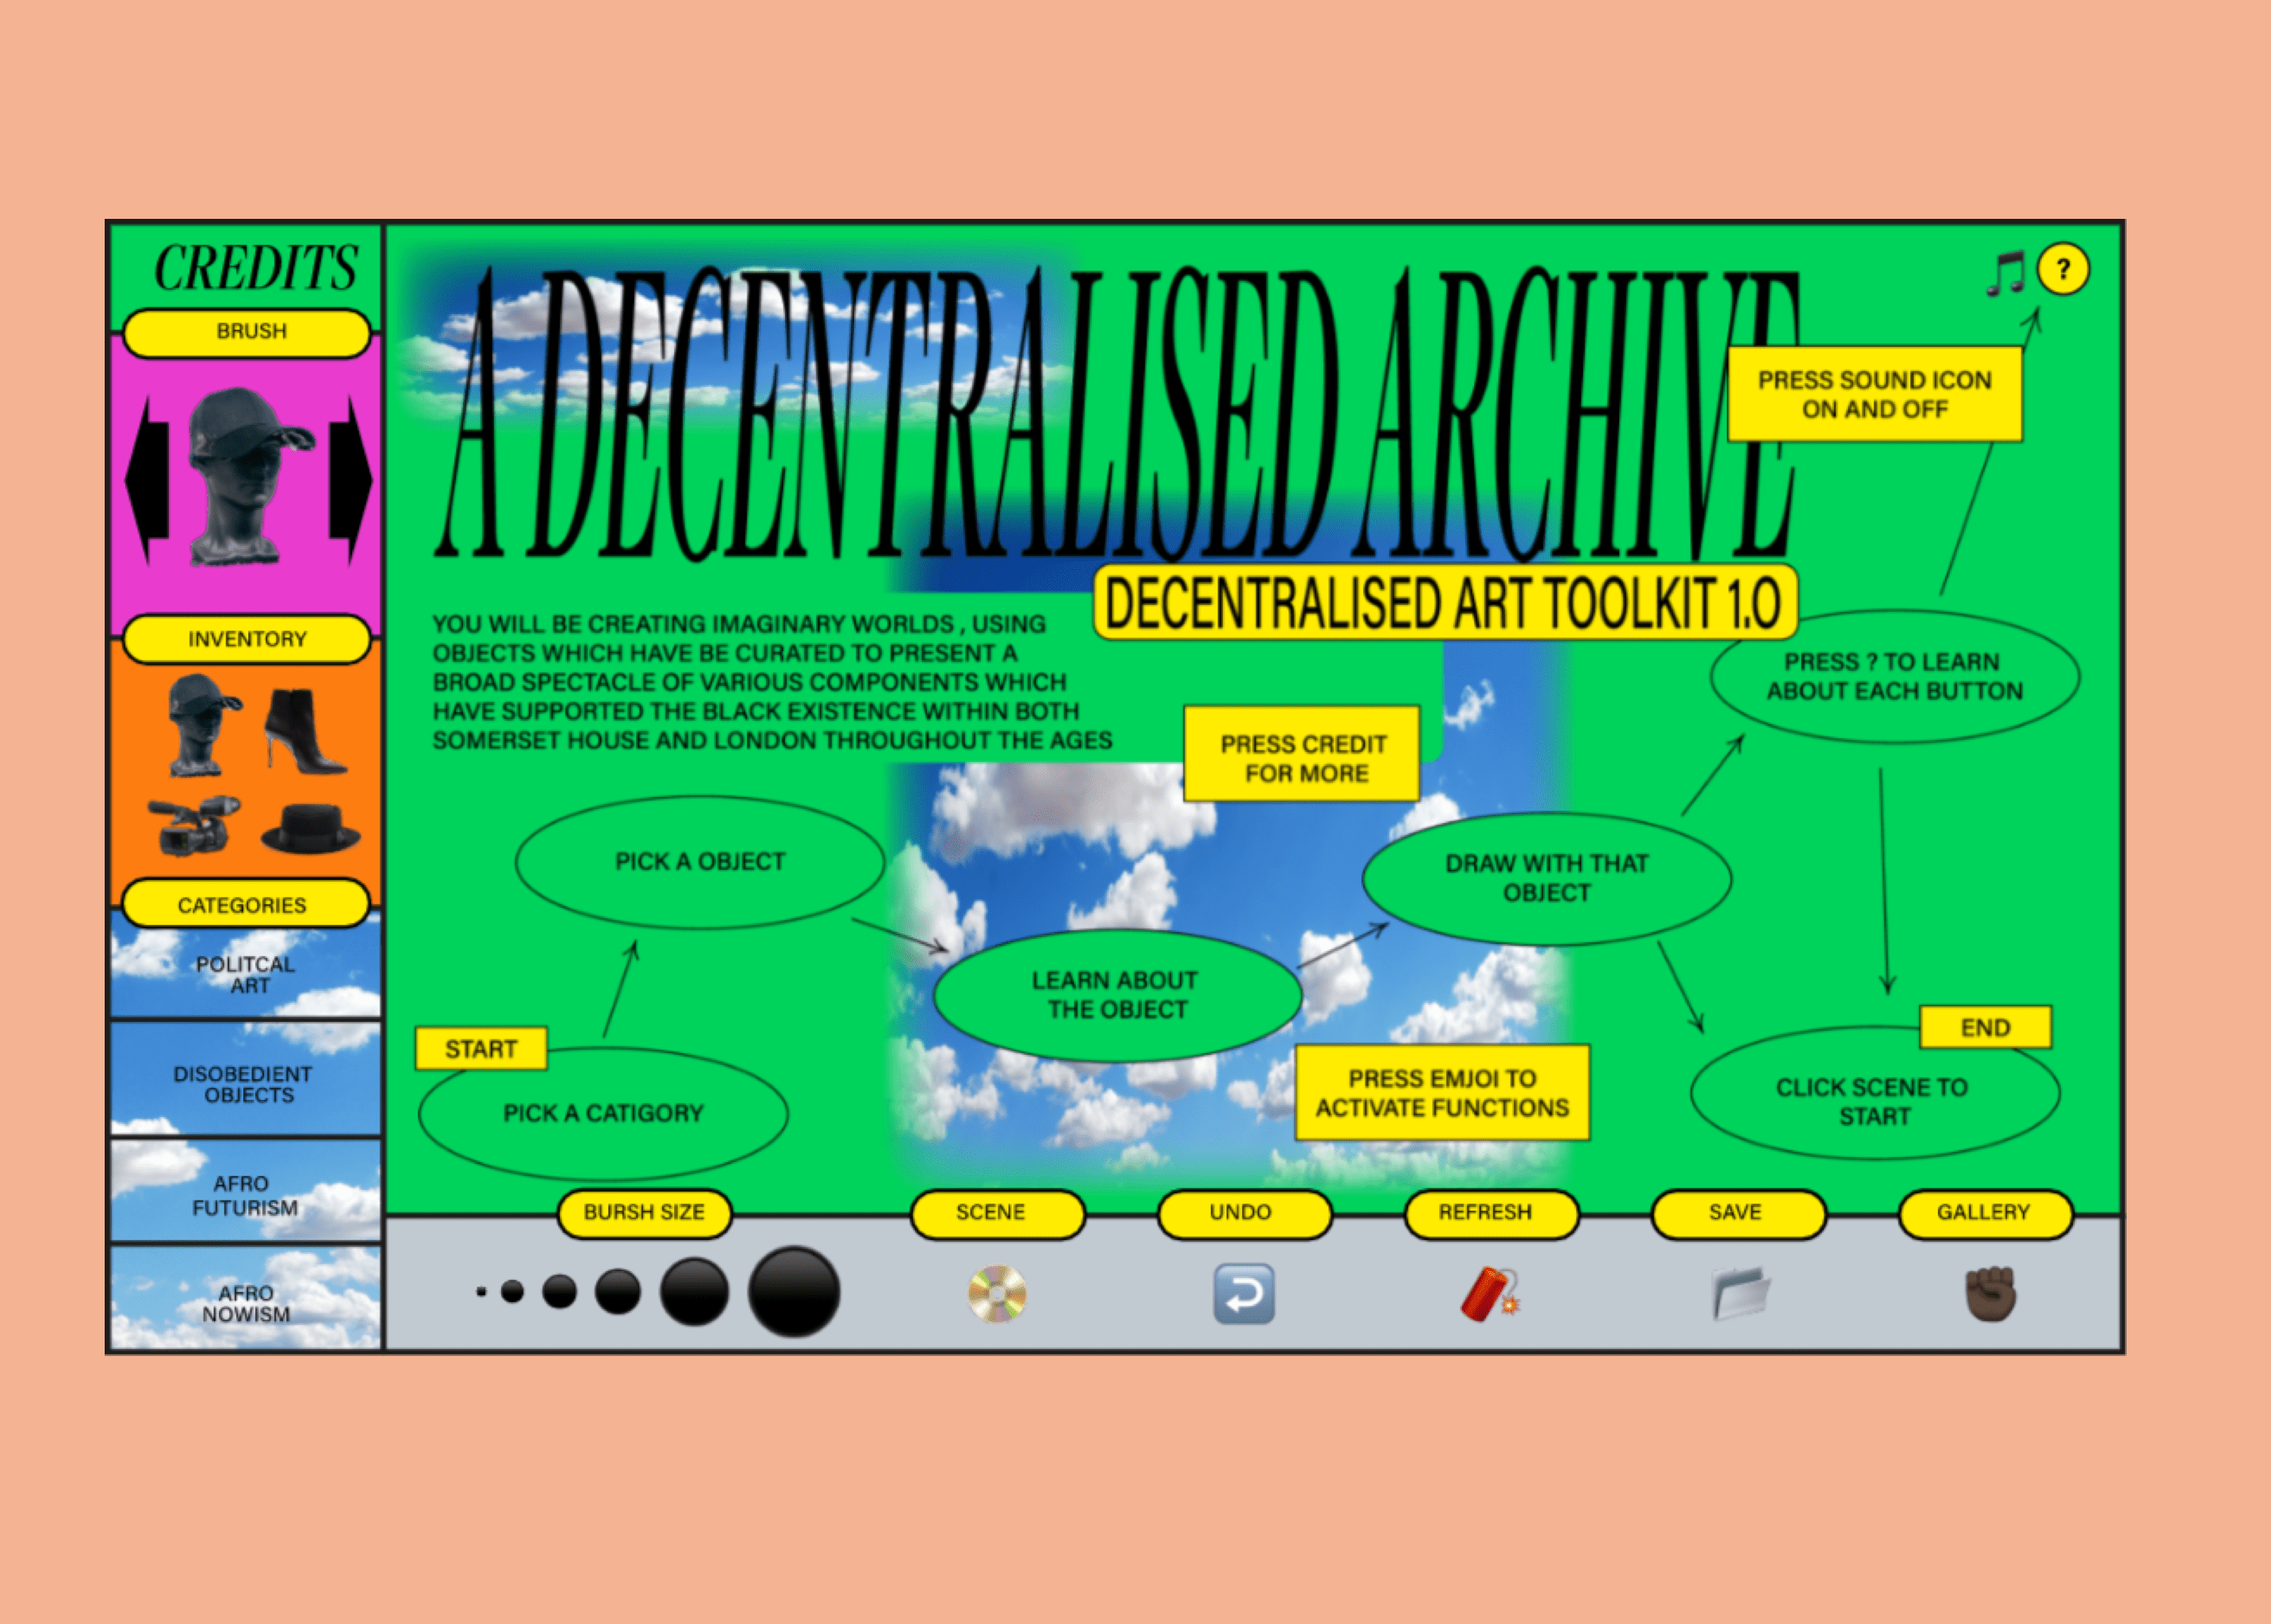 Decentralized, an interactive art project on Black British history & culture